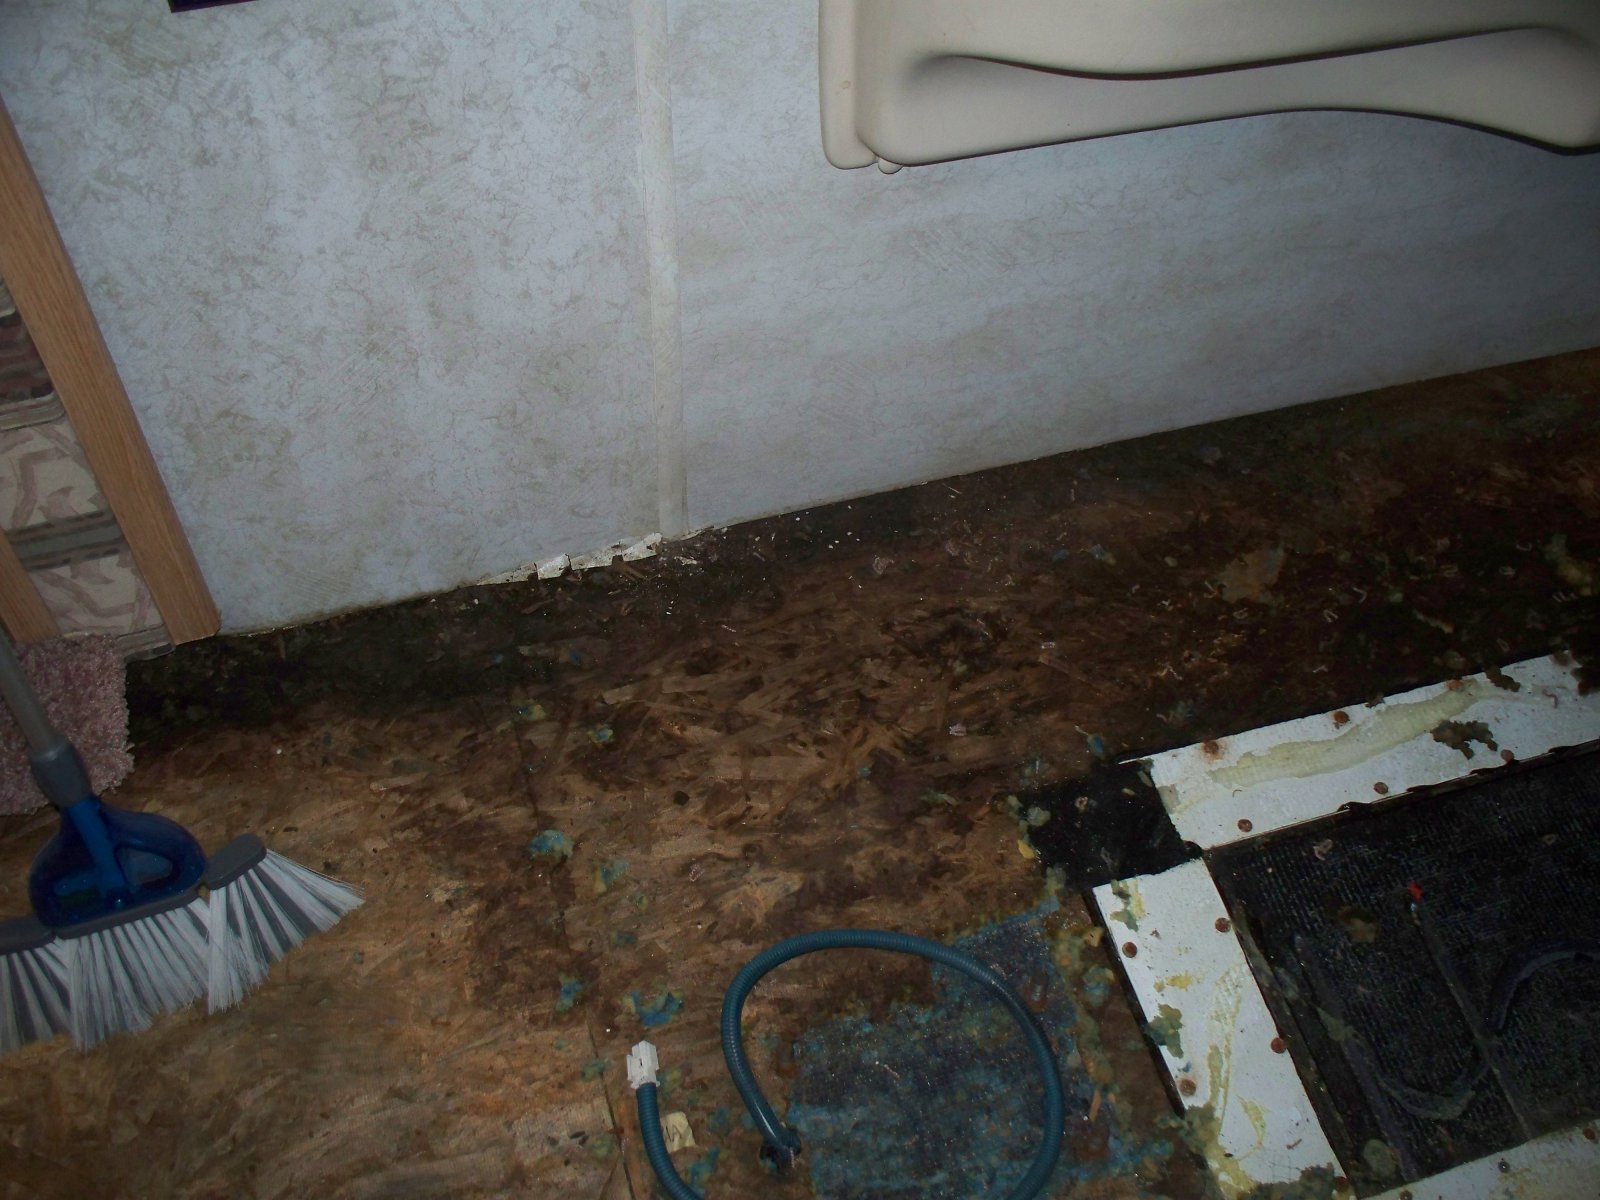 Click image for larger version  Name:#011 Dam, Dry Rot, now what.jpg Views:133 Size:274.4 KB ID:33323